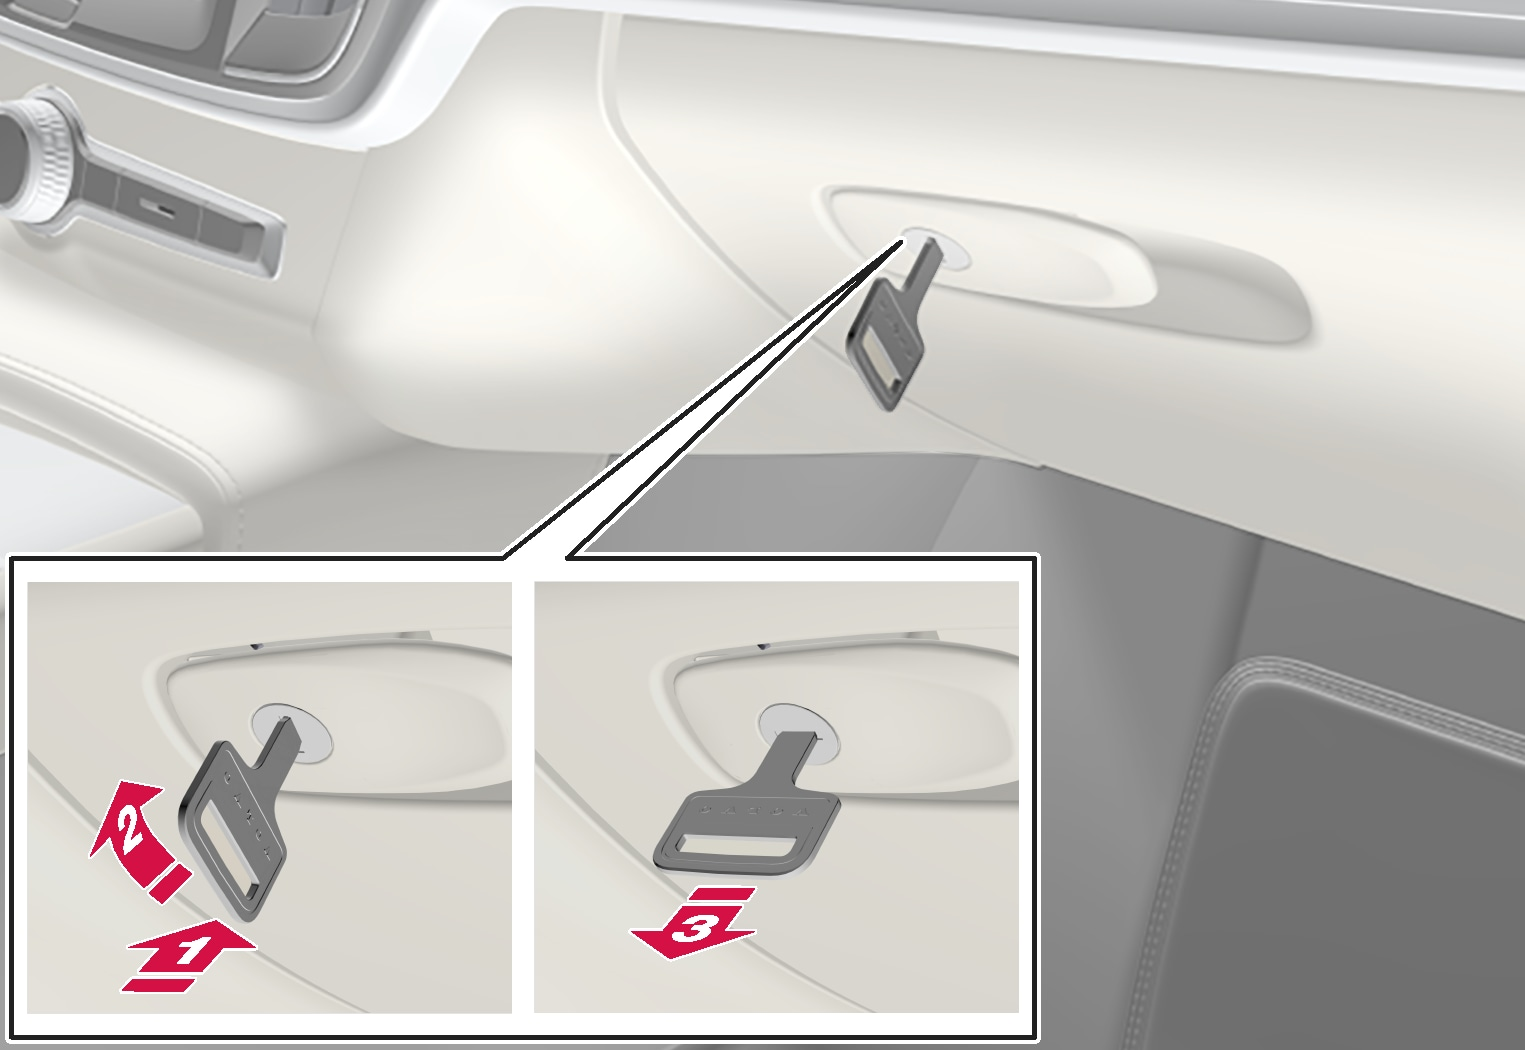 P5-1617-Locking/Unlocking the glovebox